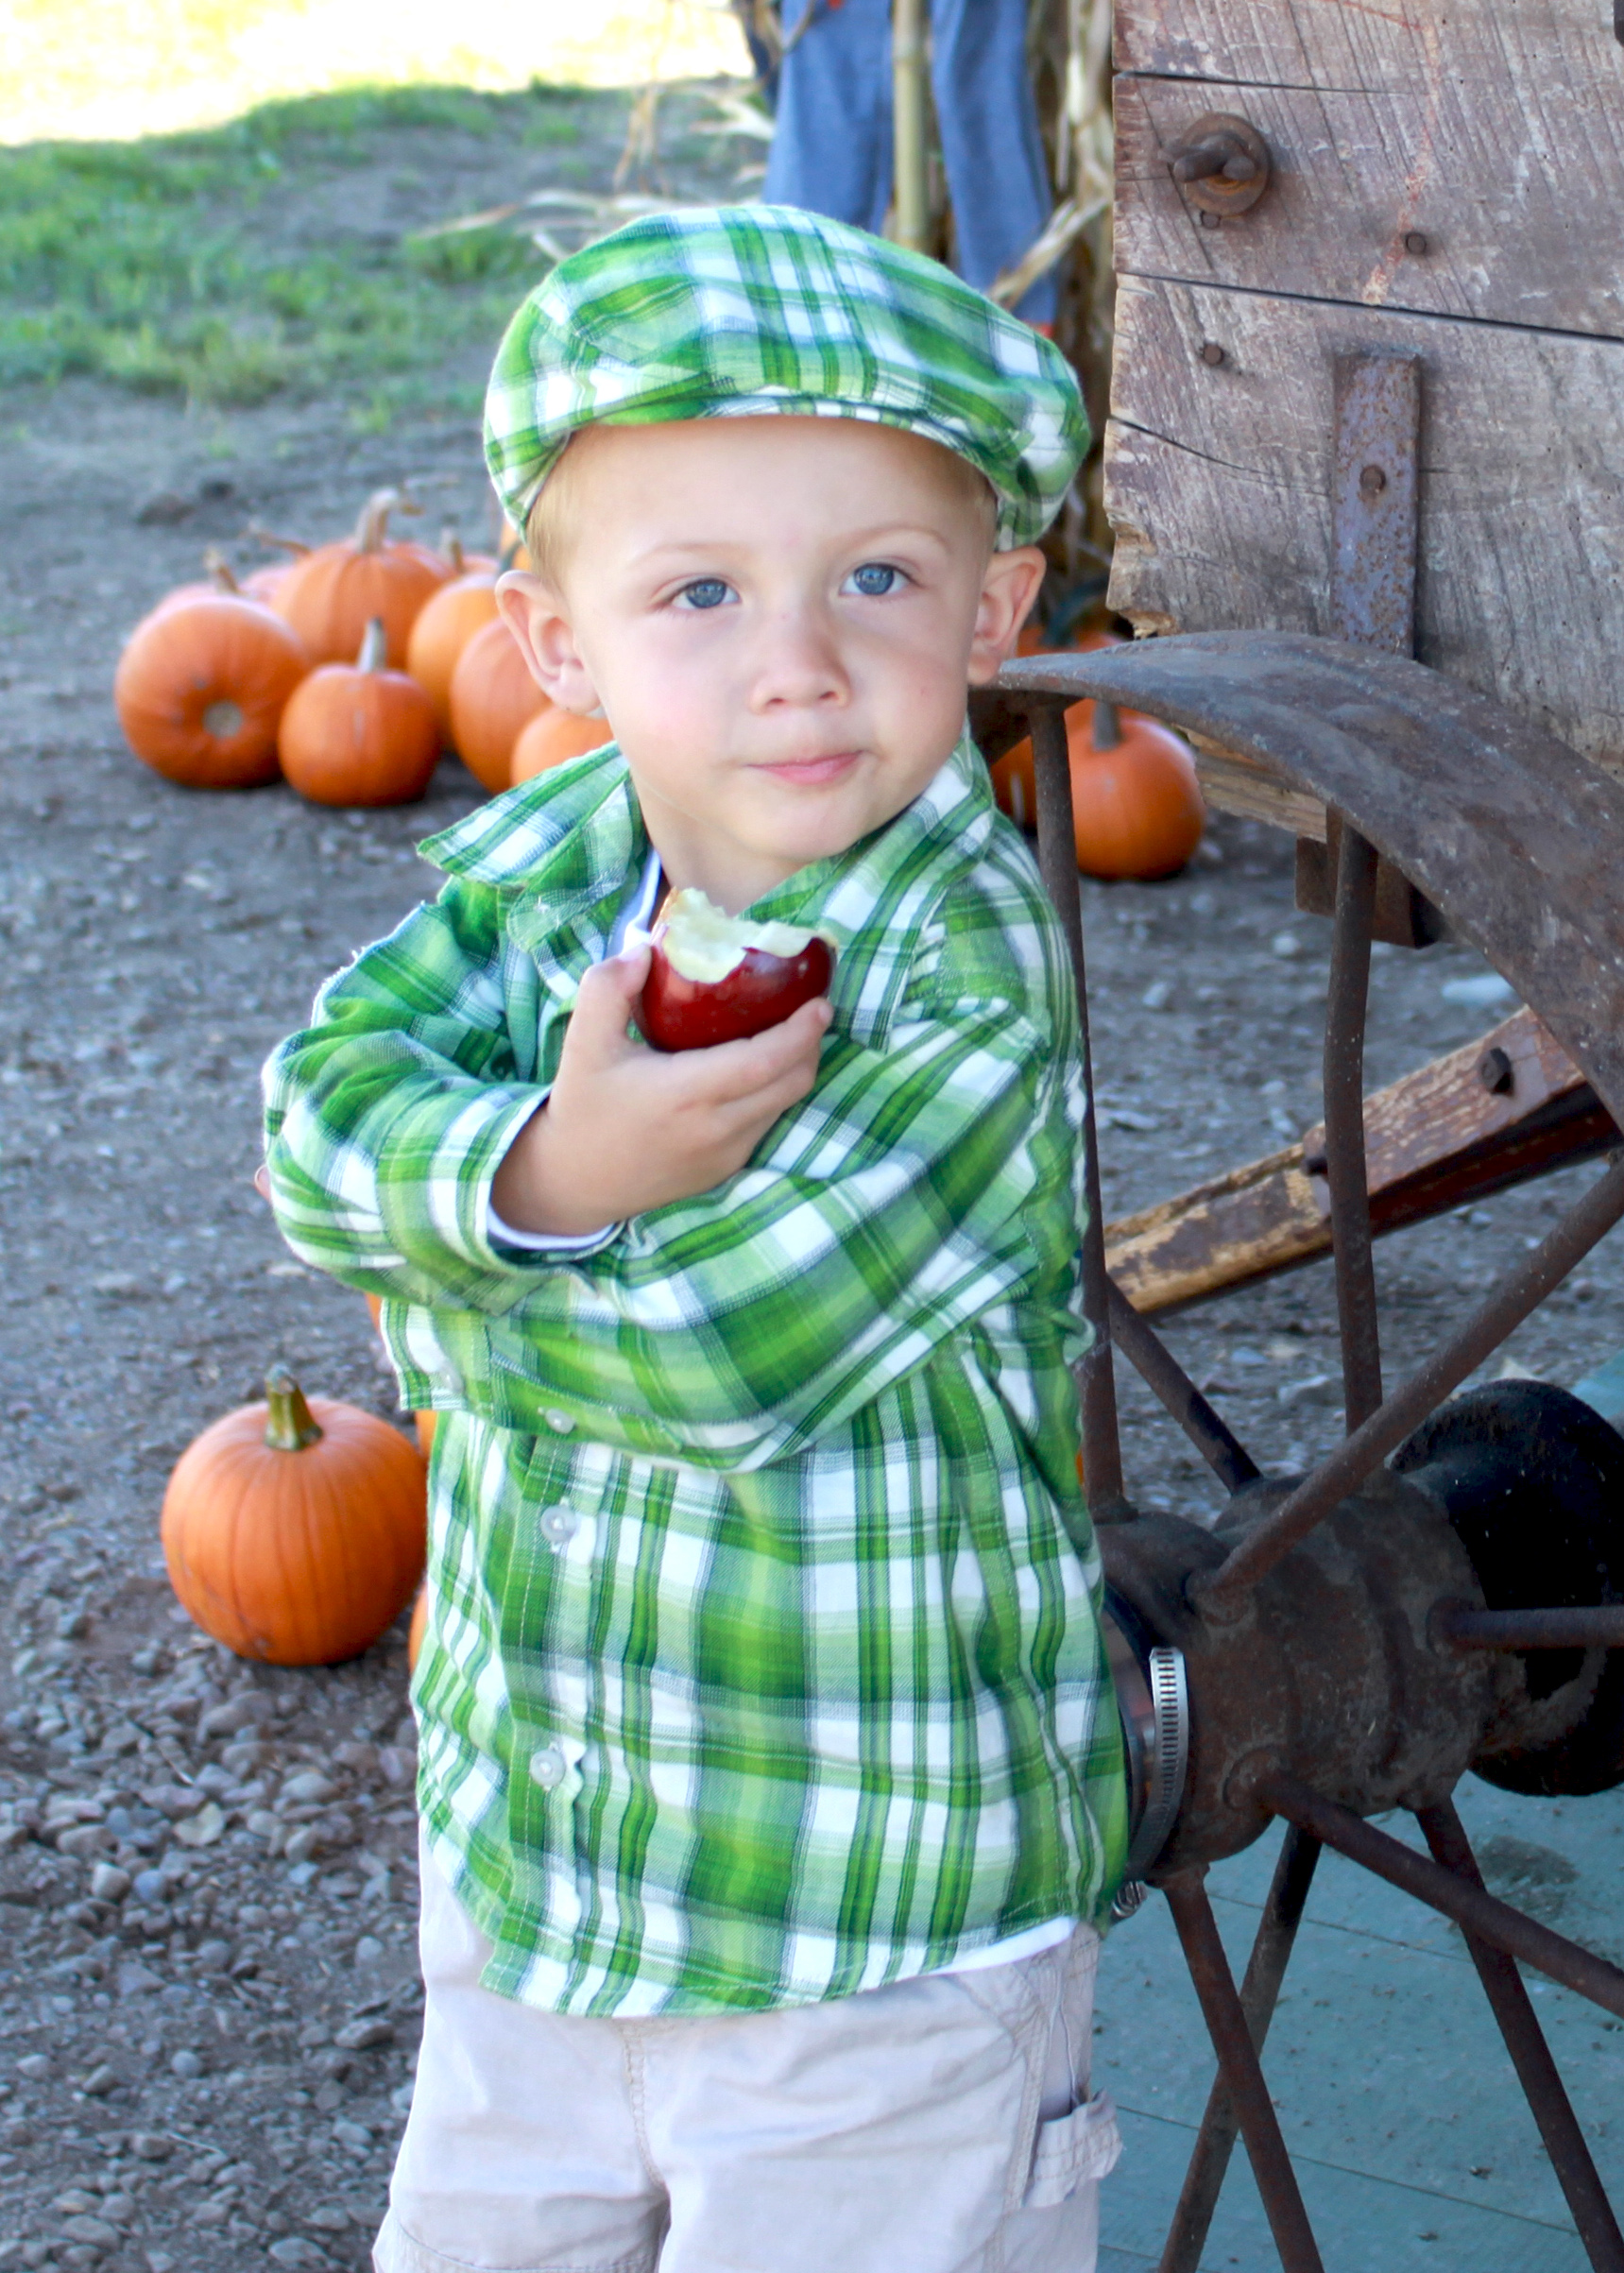 Young boy biting into fresh apple